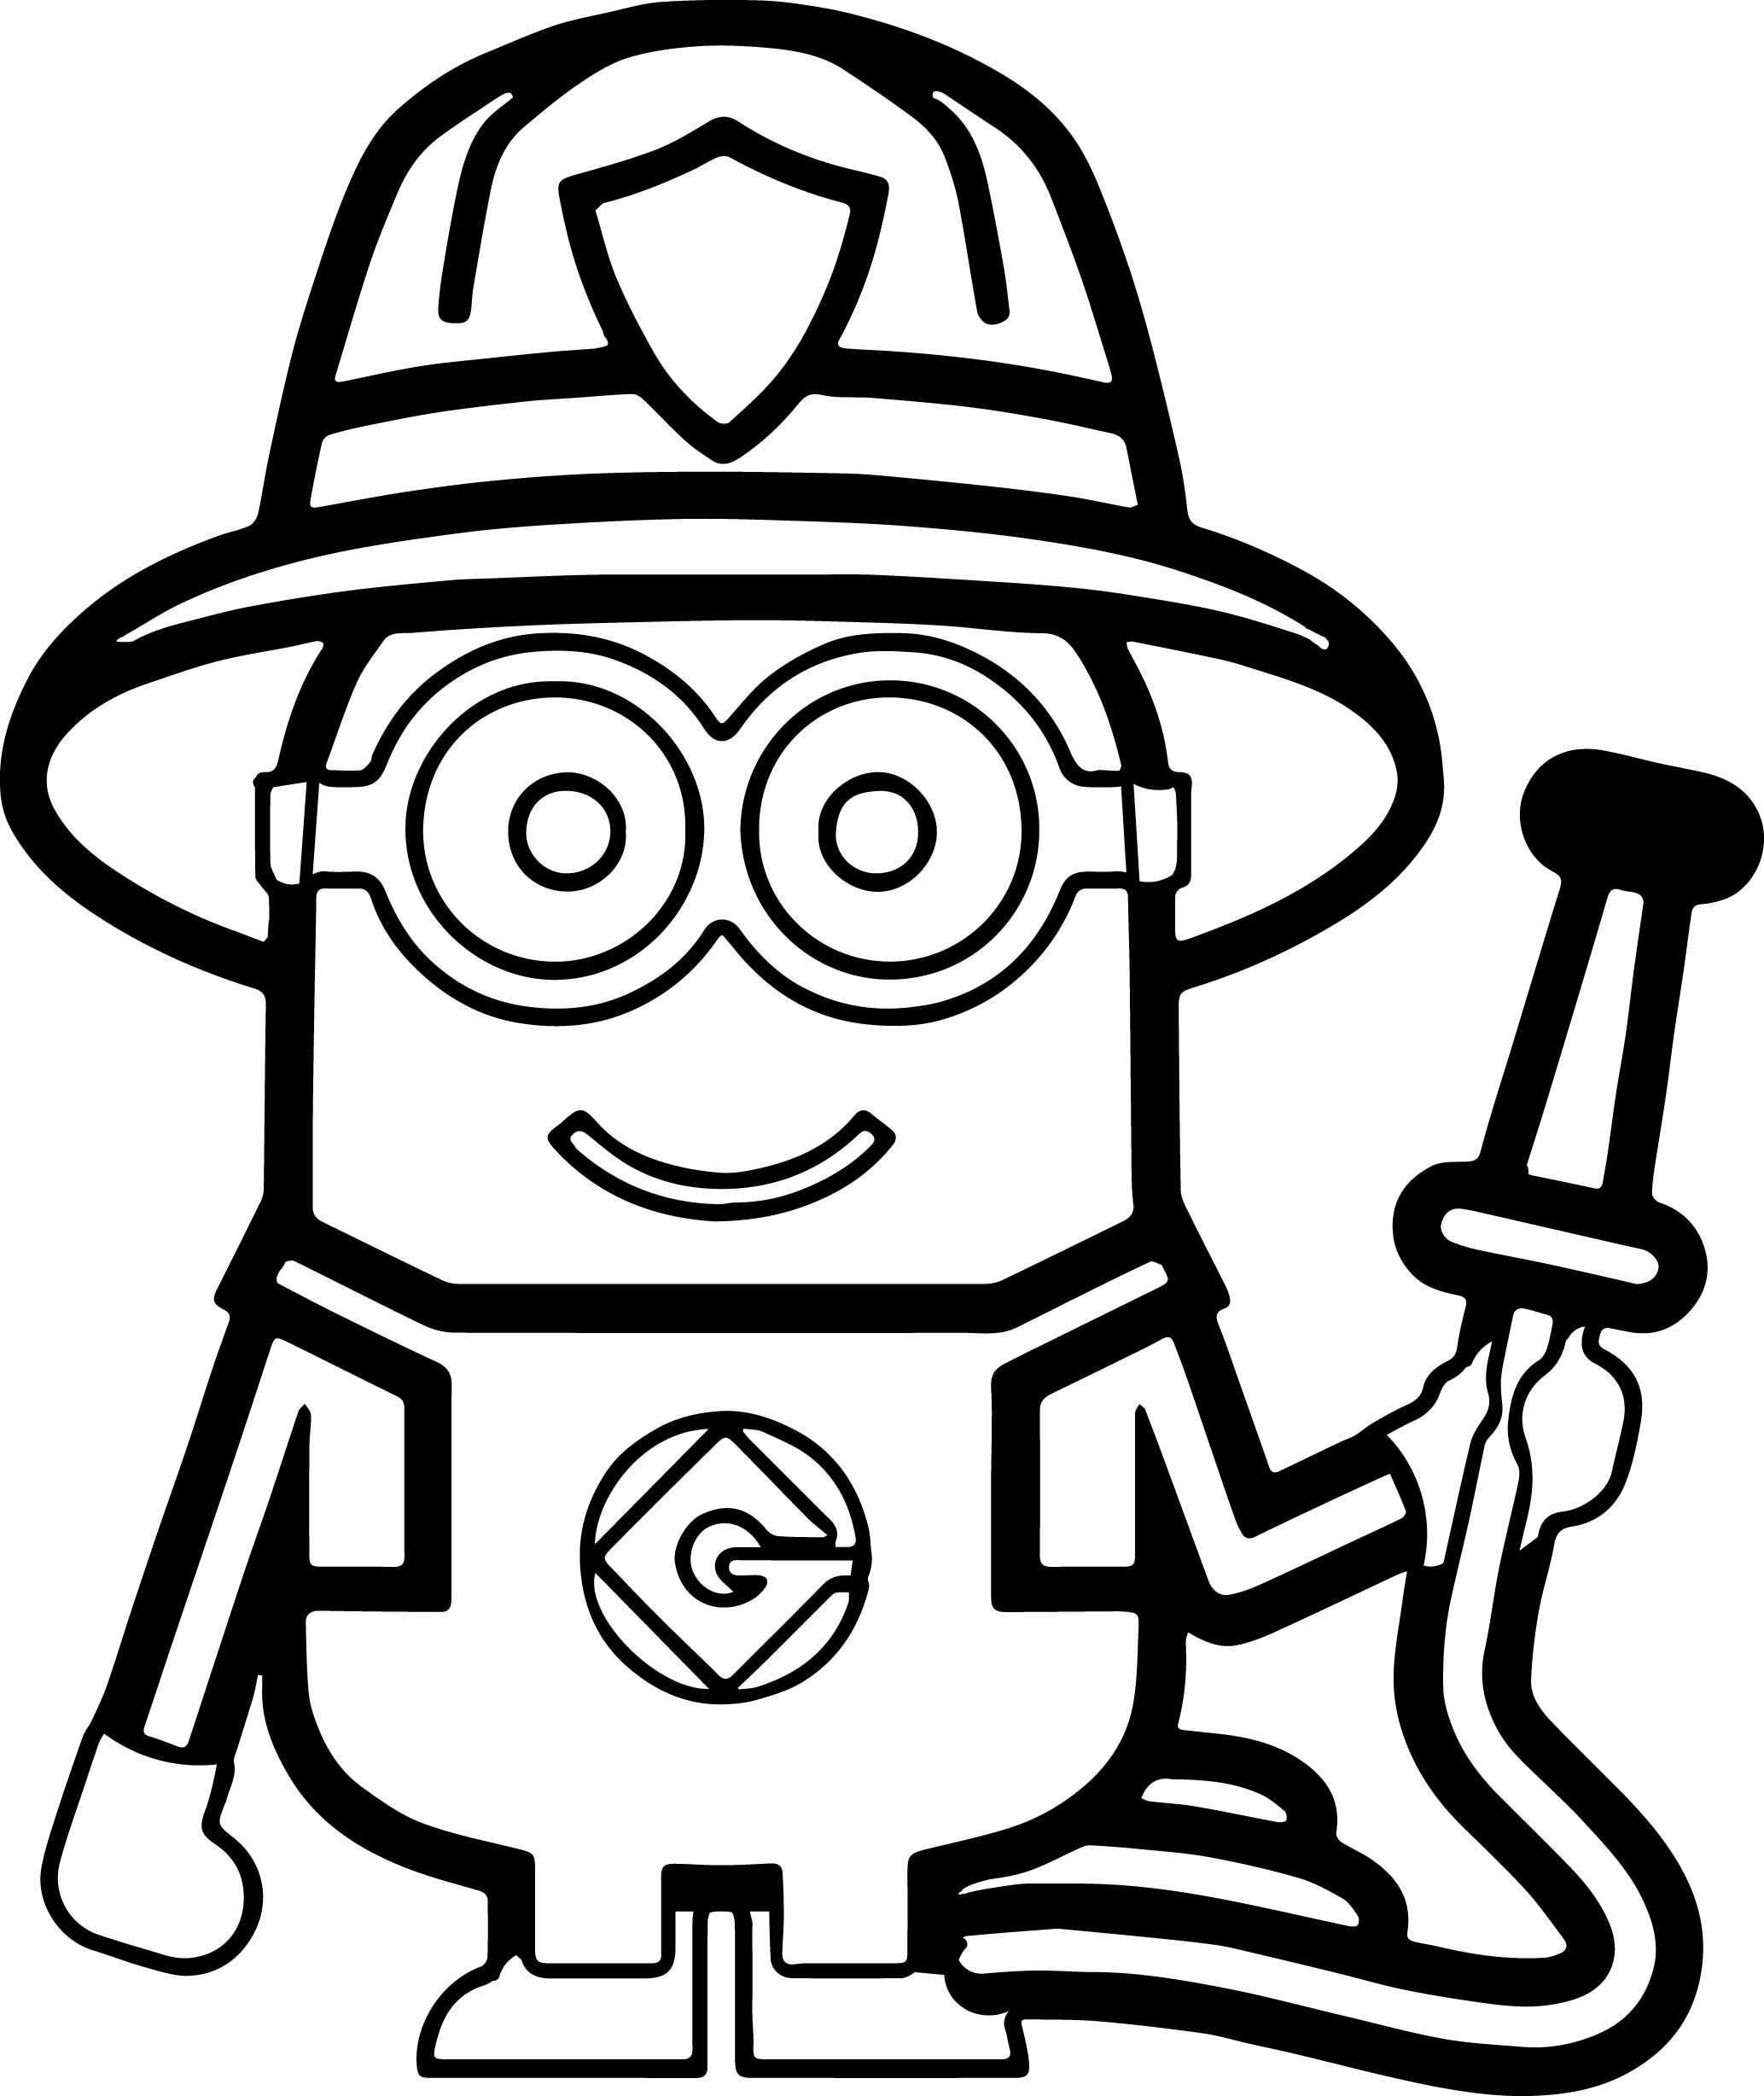 fireman coloring pages Minions Fireman Coloring Page | COLORING BOOK : ADULT COLORING  fireman coloring pages